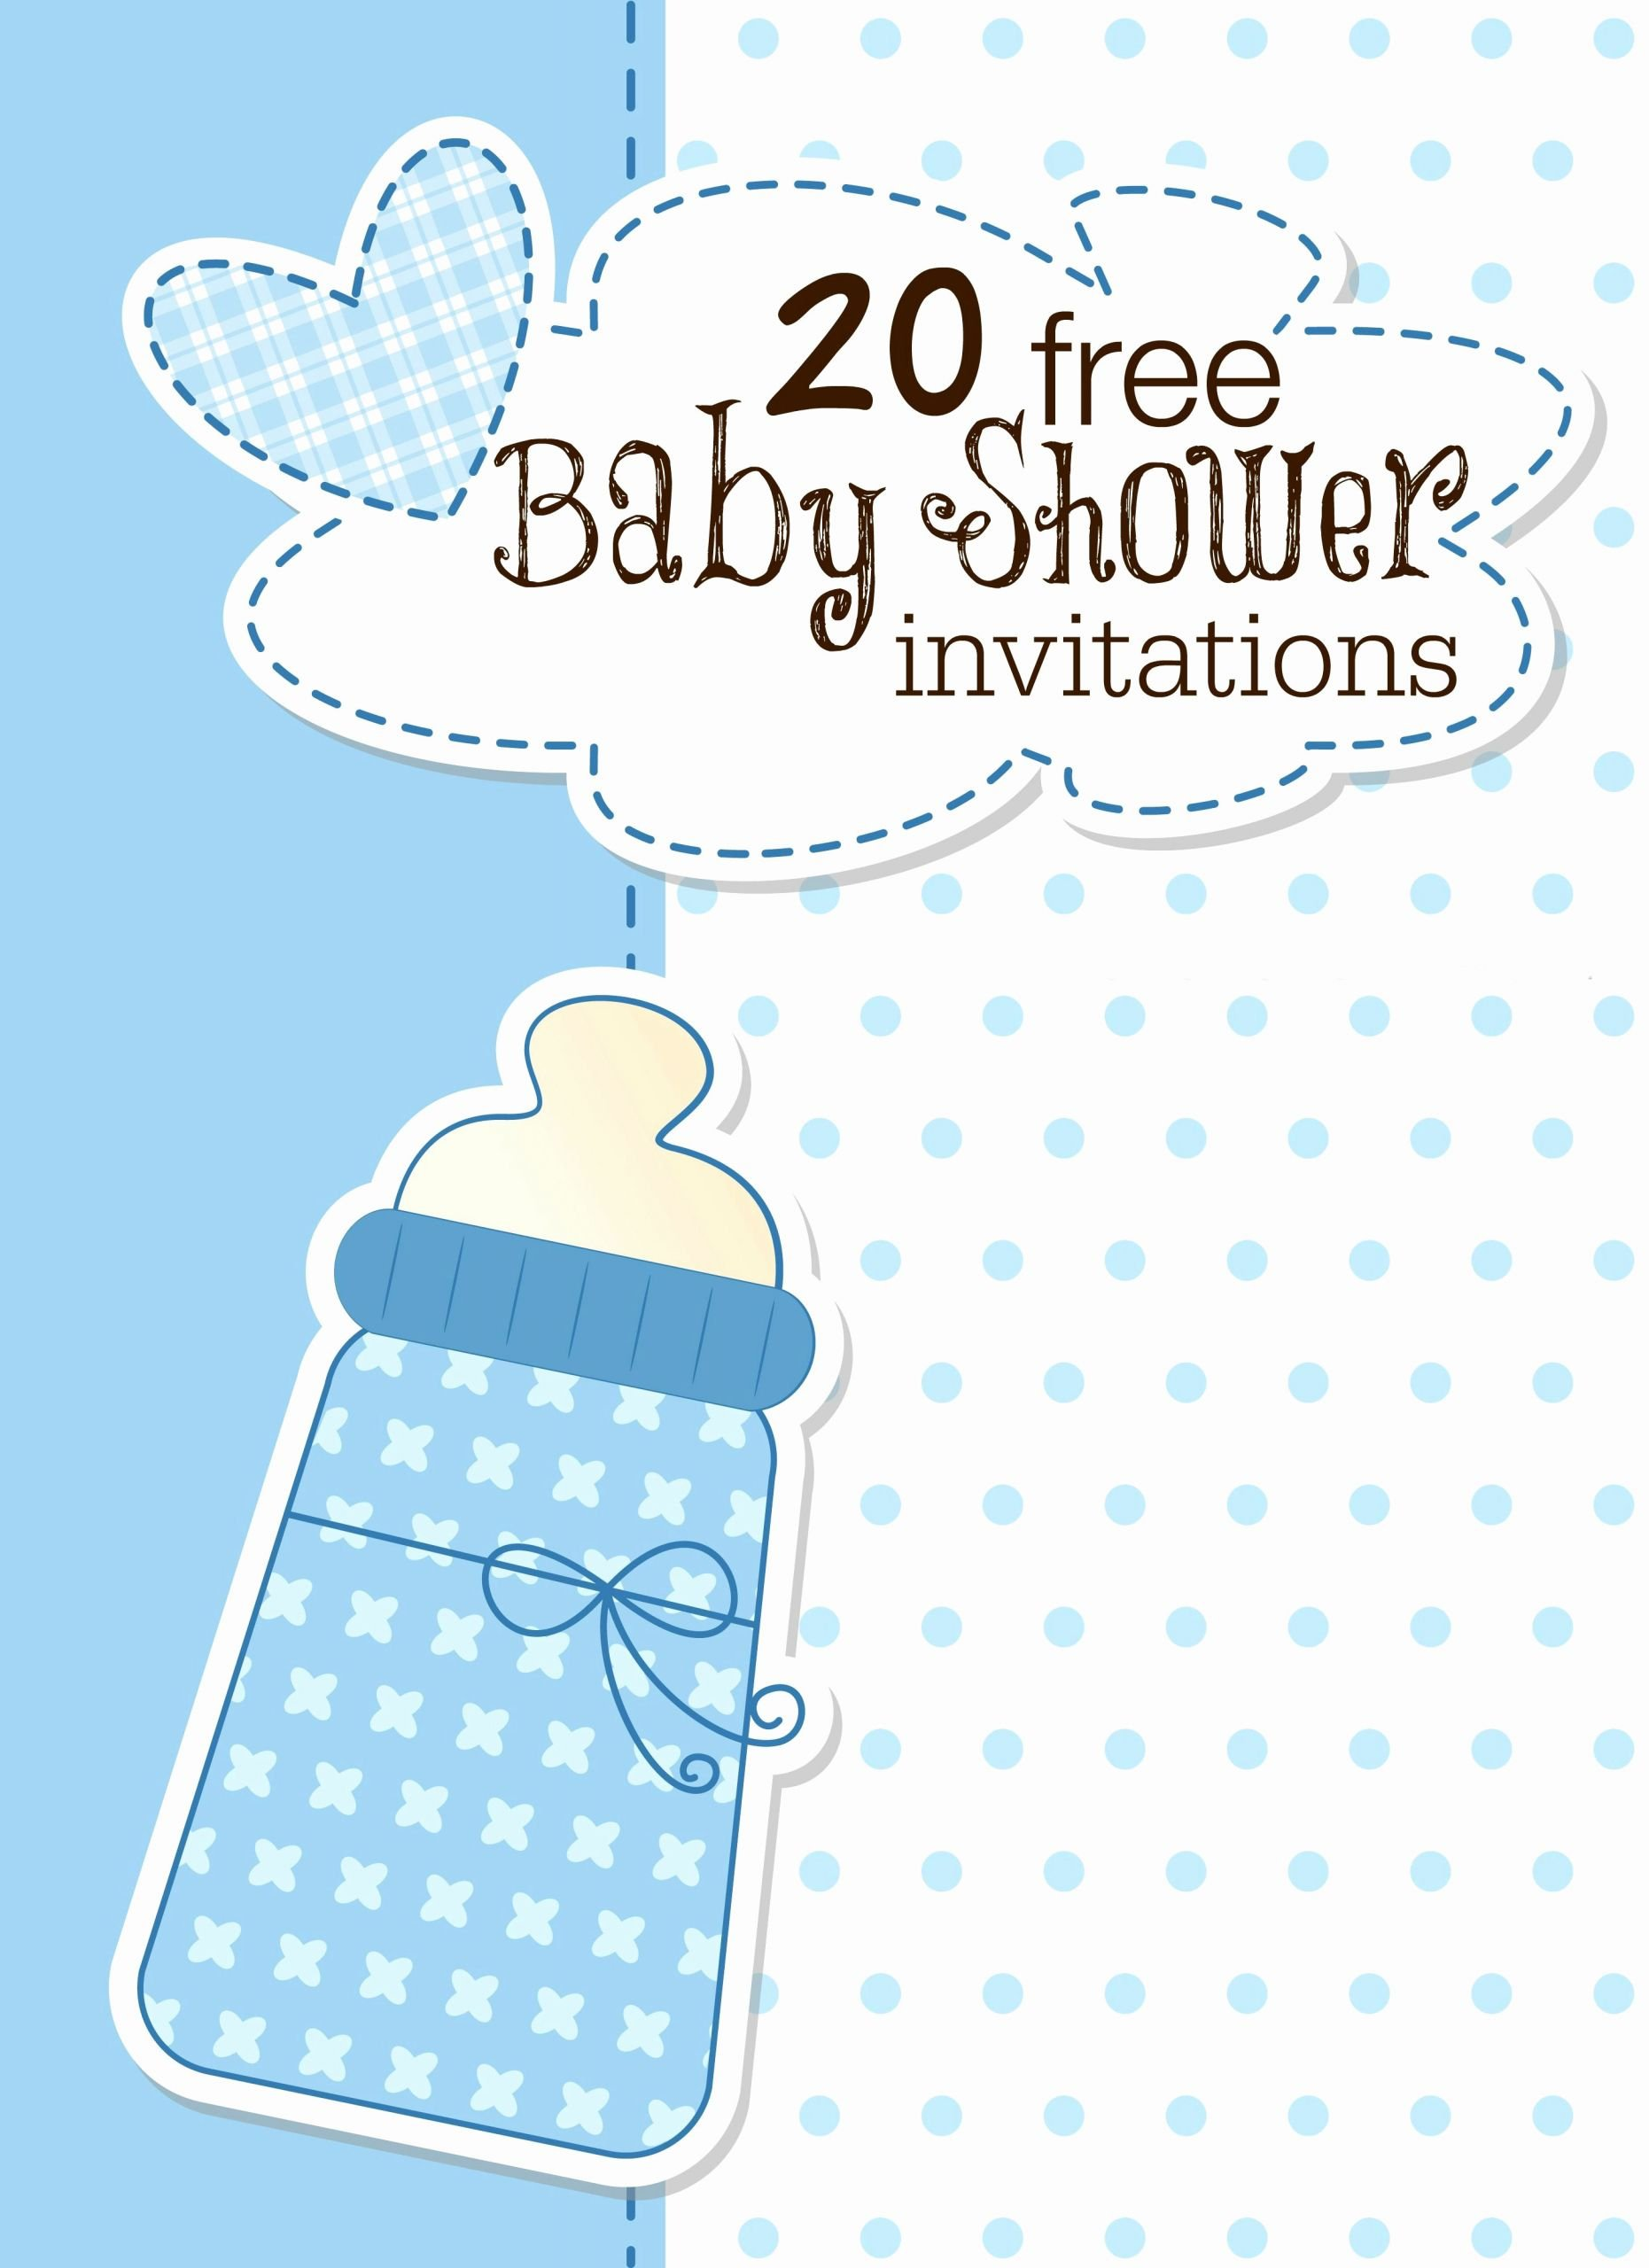 Free Baby Invitation Template Unique Free Baby Invitation Template Free Baby Shower